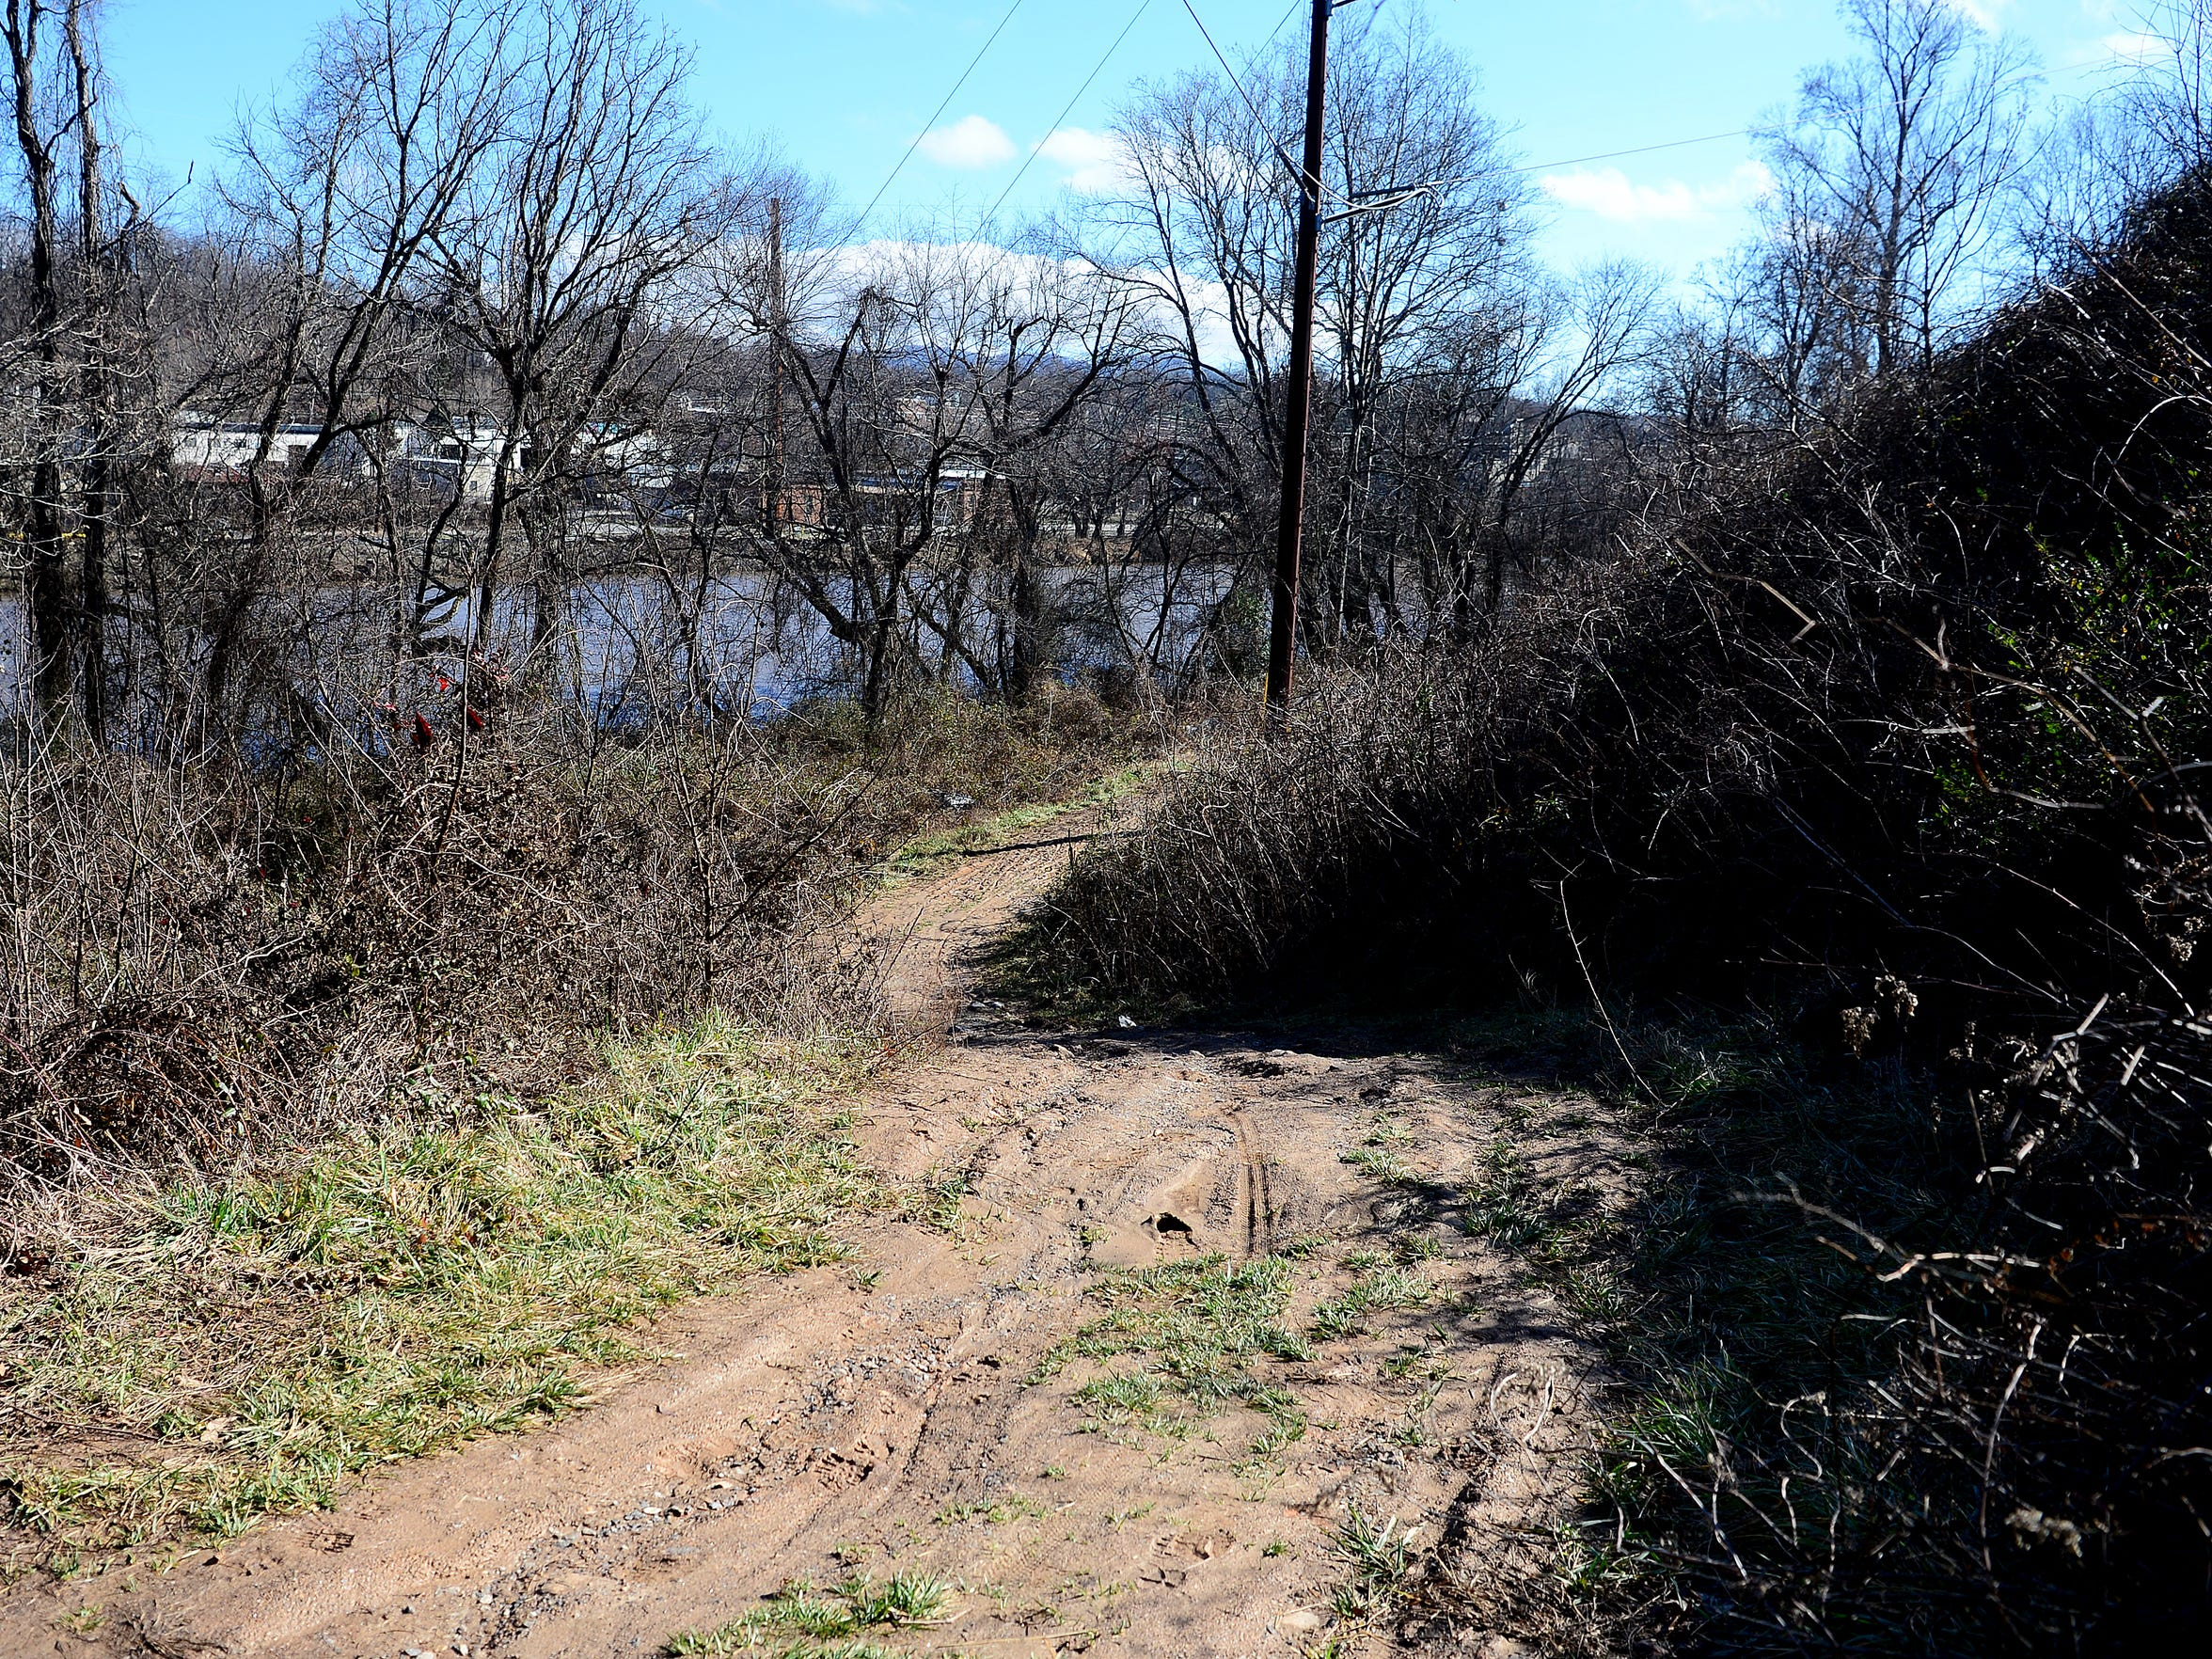 A dirt path marks what will soon be an extension of the French Broad River Greenway running from Haywood Road in the River Arts District along the river to connect with existing greenway at the French Broad River Park on Amboy Road.